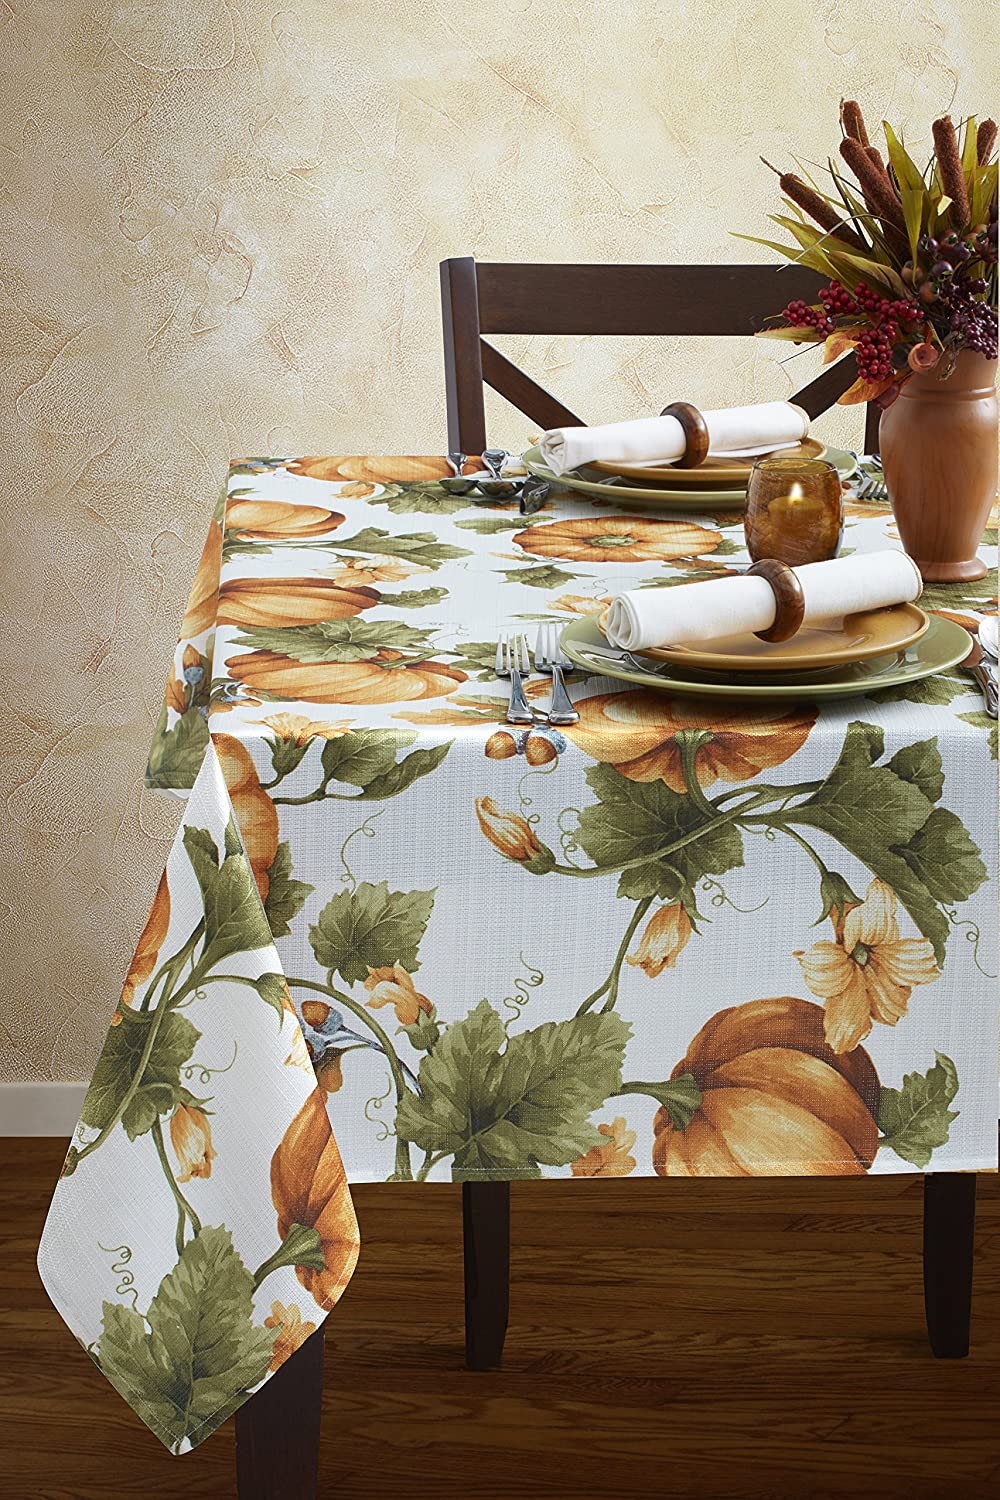 Benson Mills Jubilee Printed Jacquard Tablecloth For Thanksgiving, Harvest and Fall (52